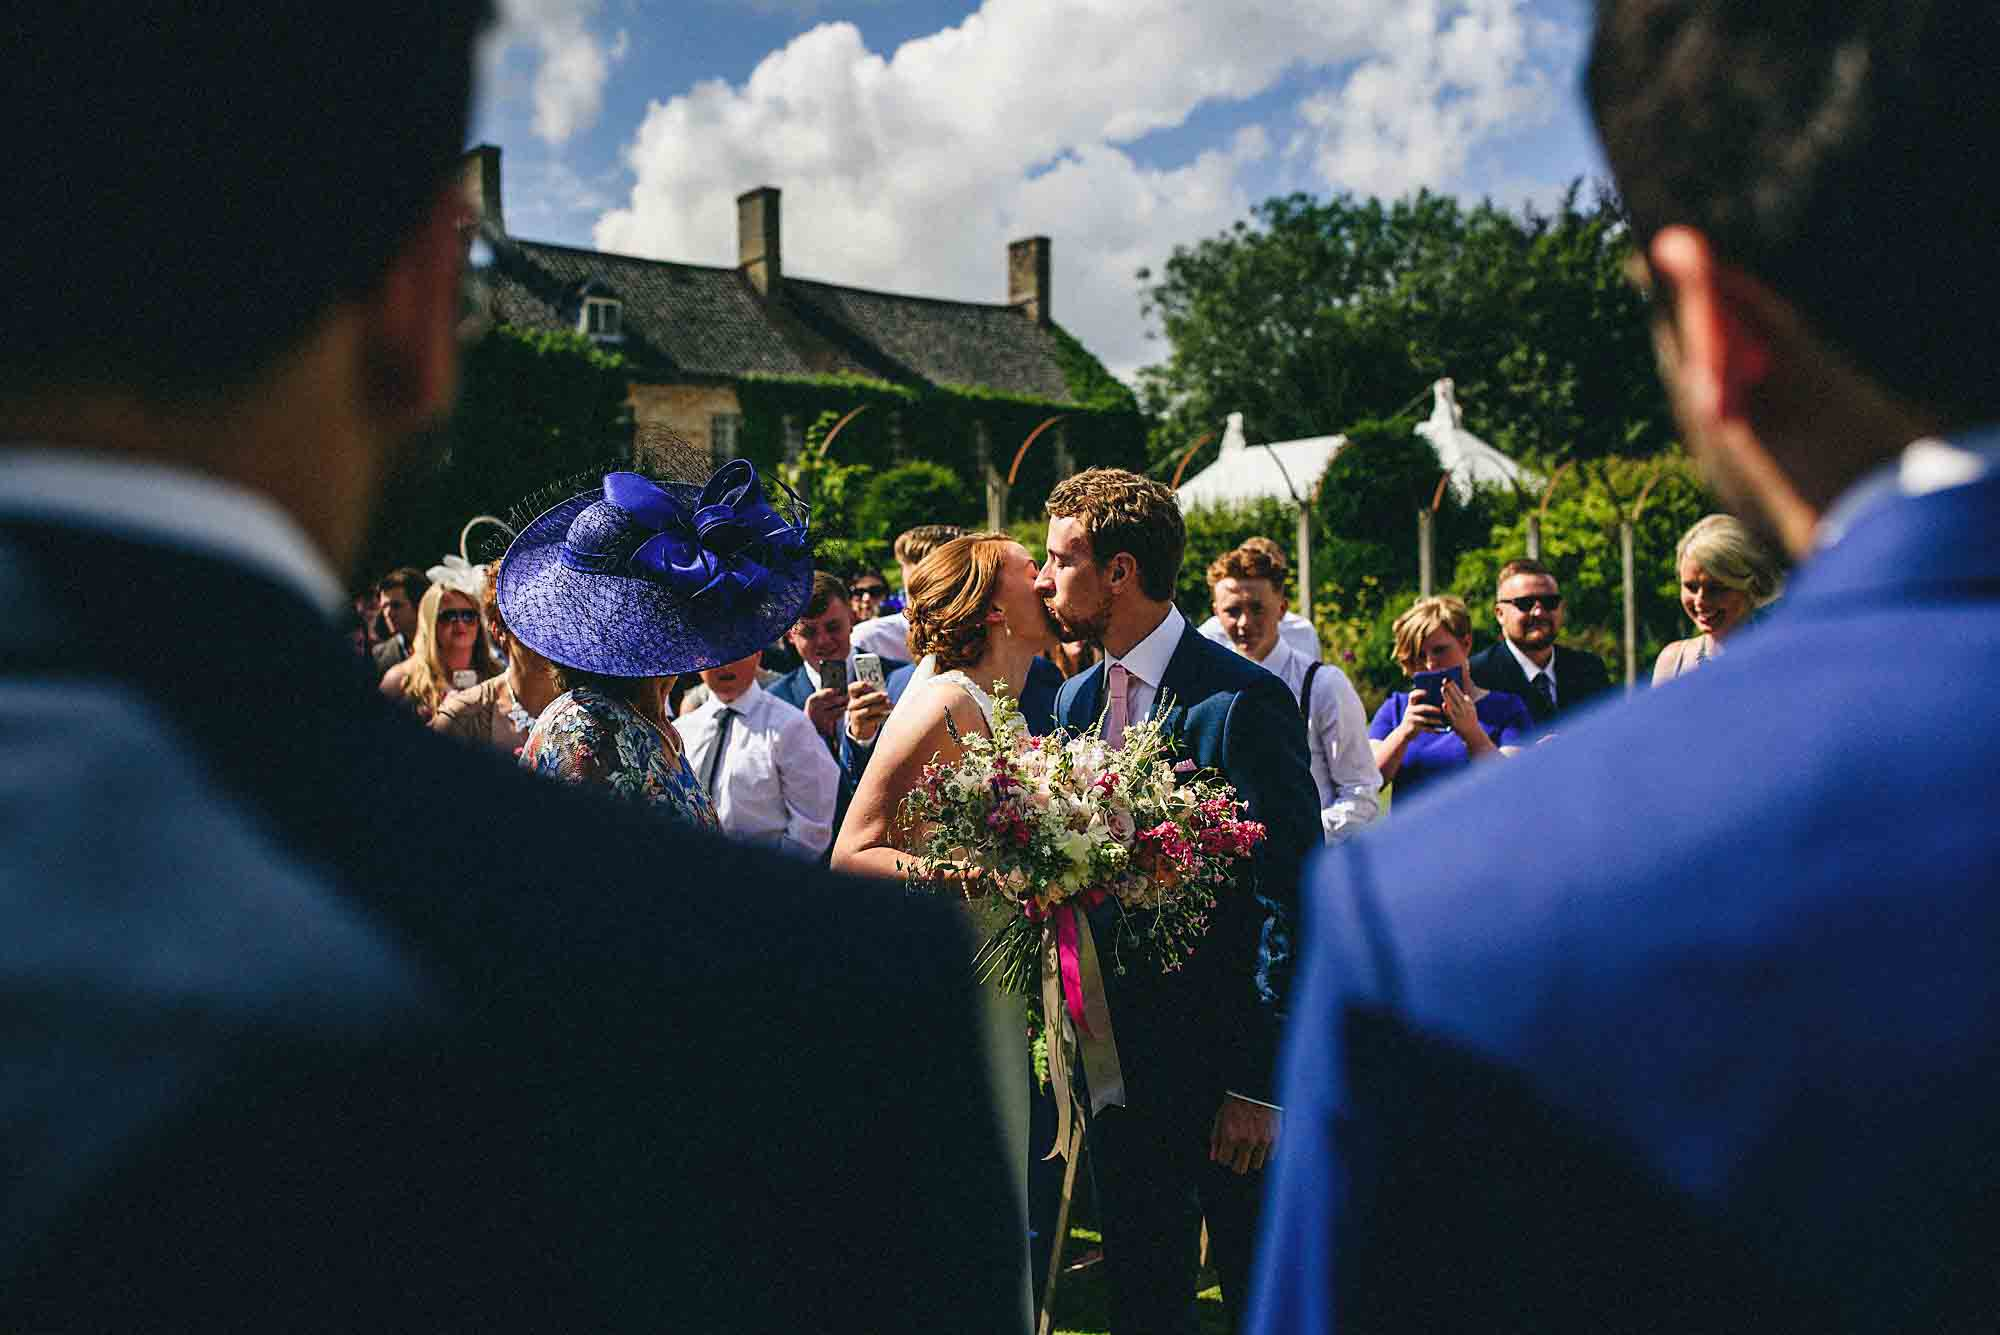 Narborough Hall Gardens wedding photography 21 Completed